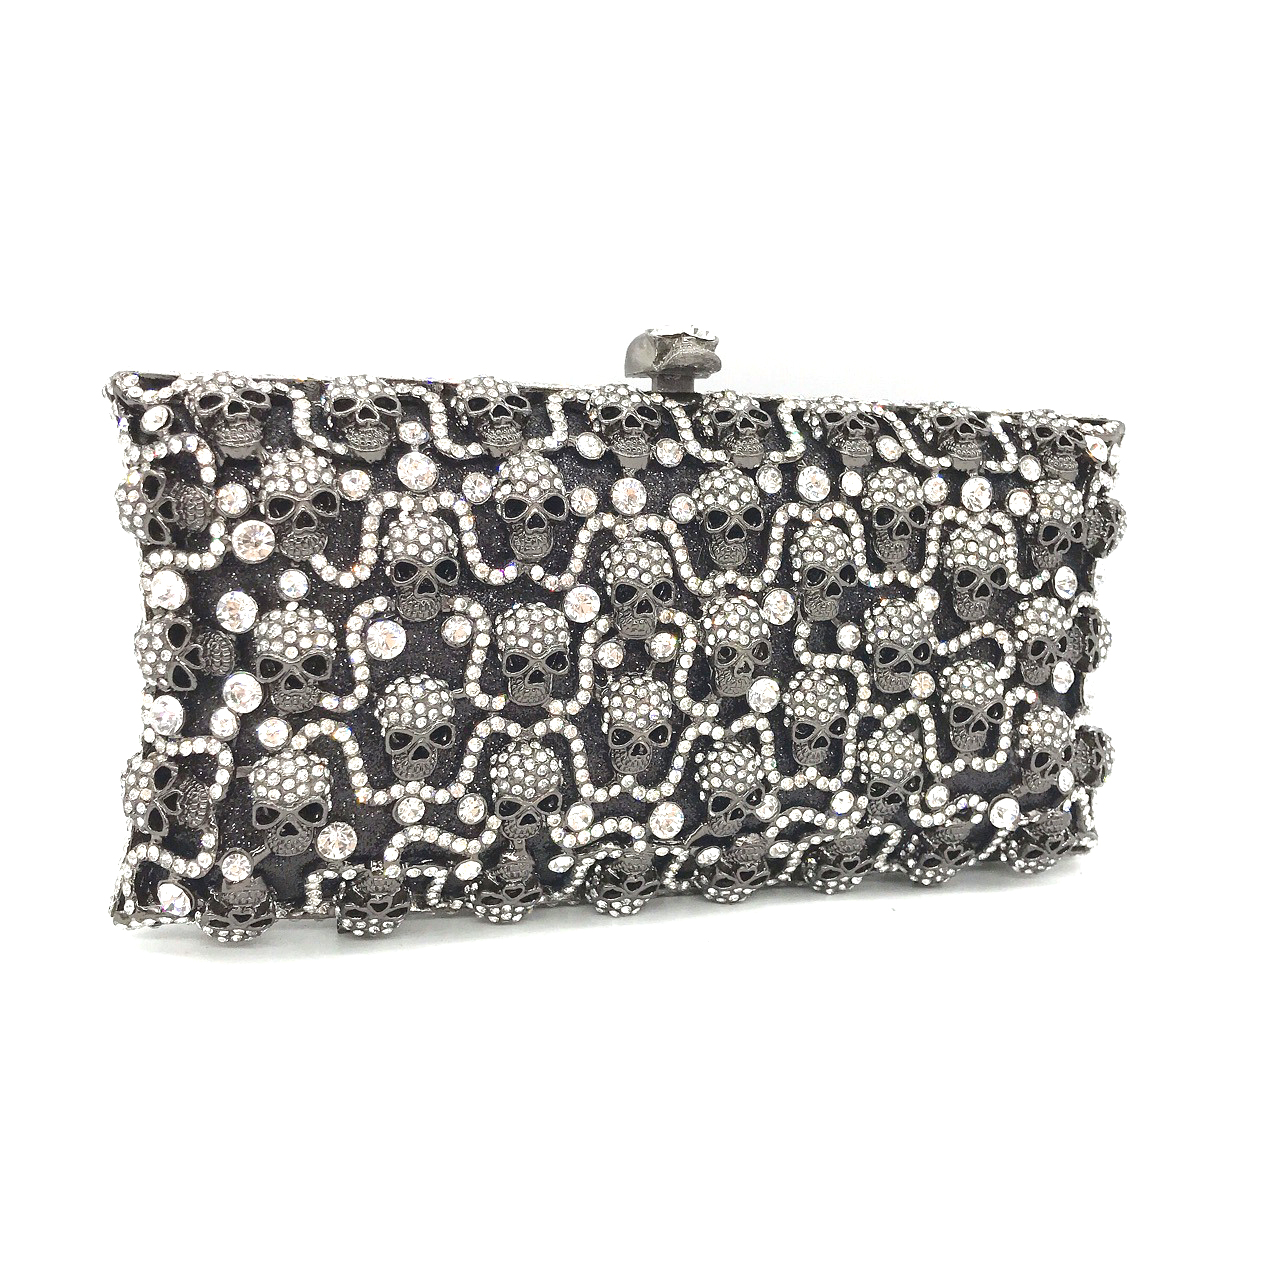 Bag For Women Luxury Three-Dimensional Black Skull Evening Dress Bag Ladies Party Hand Makeup Coin Purse-BeeInFly